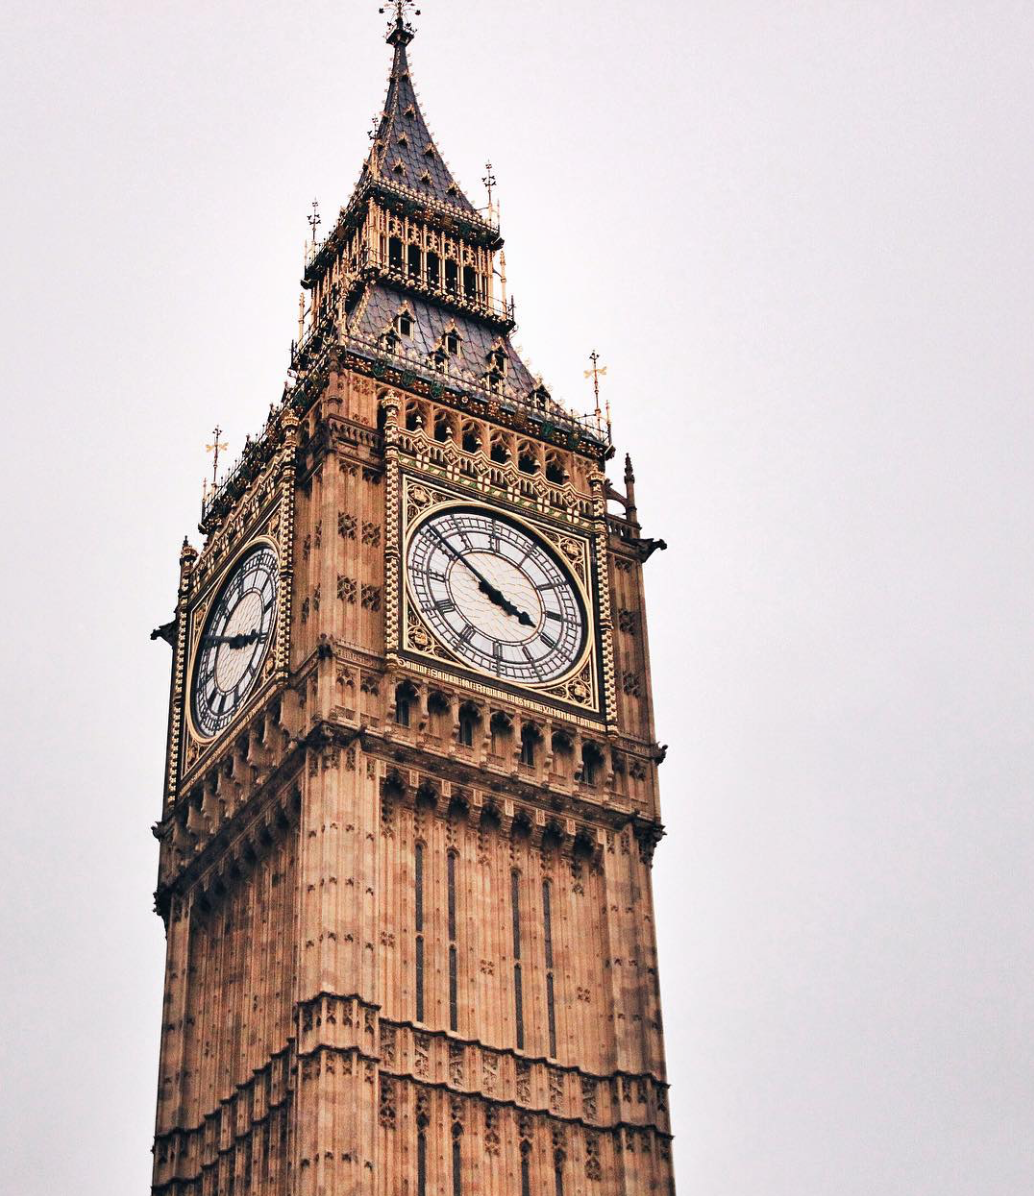 13 amazing and unexpected facts about London